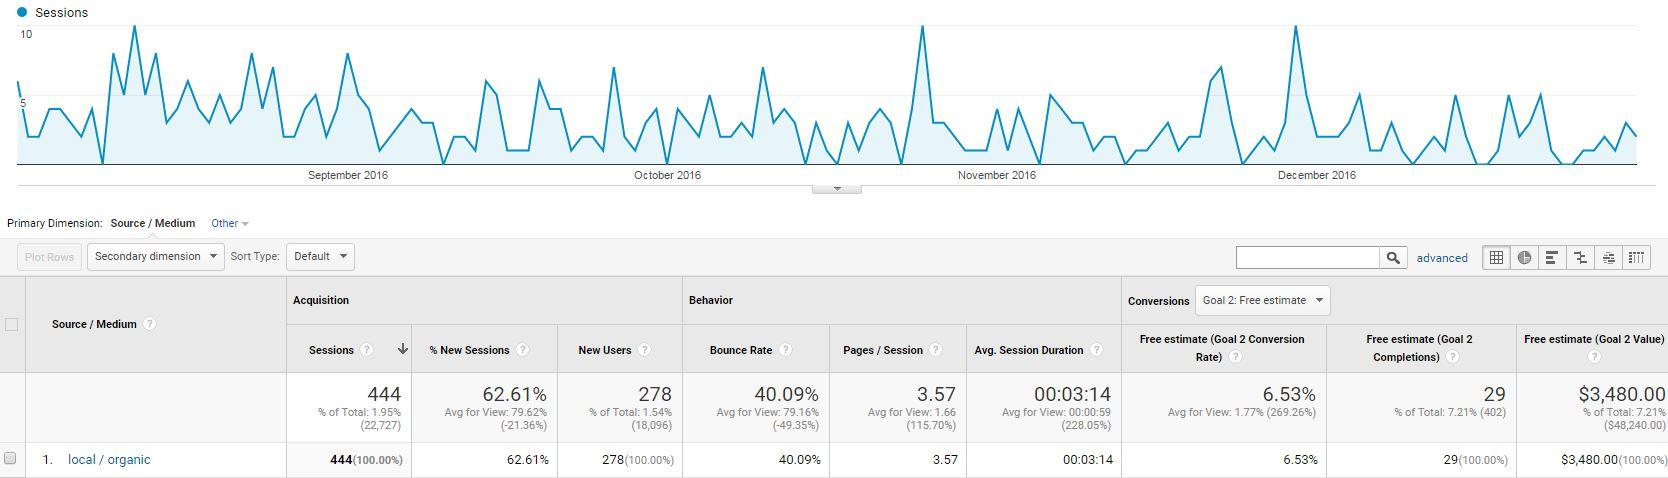 Google My Business Campaign in Google Analytics - markscheets.com